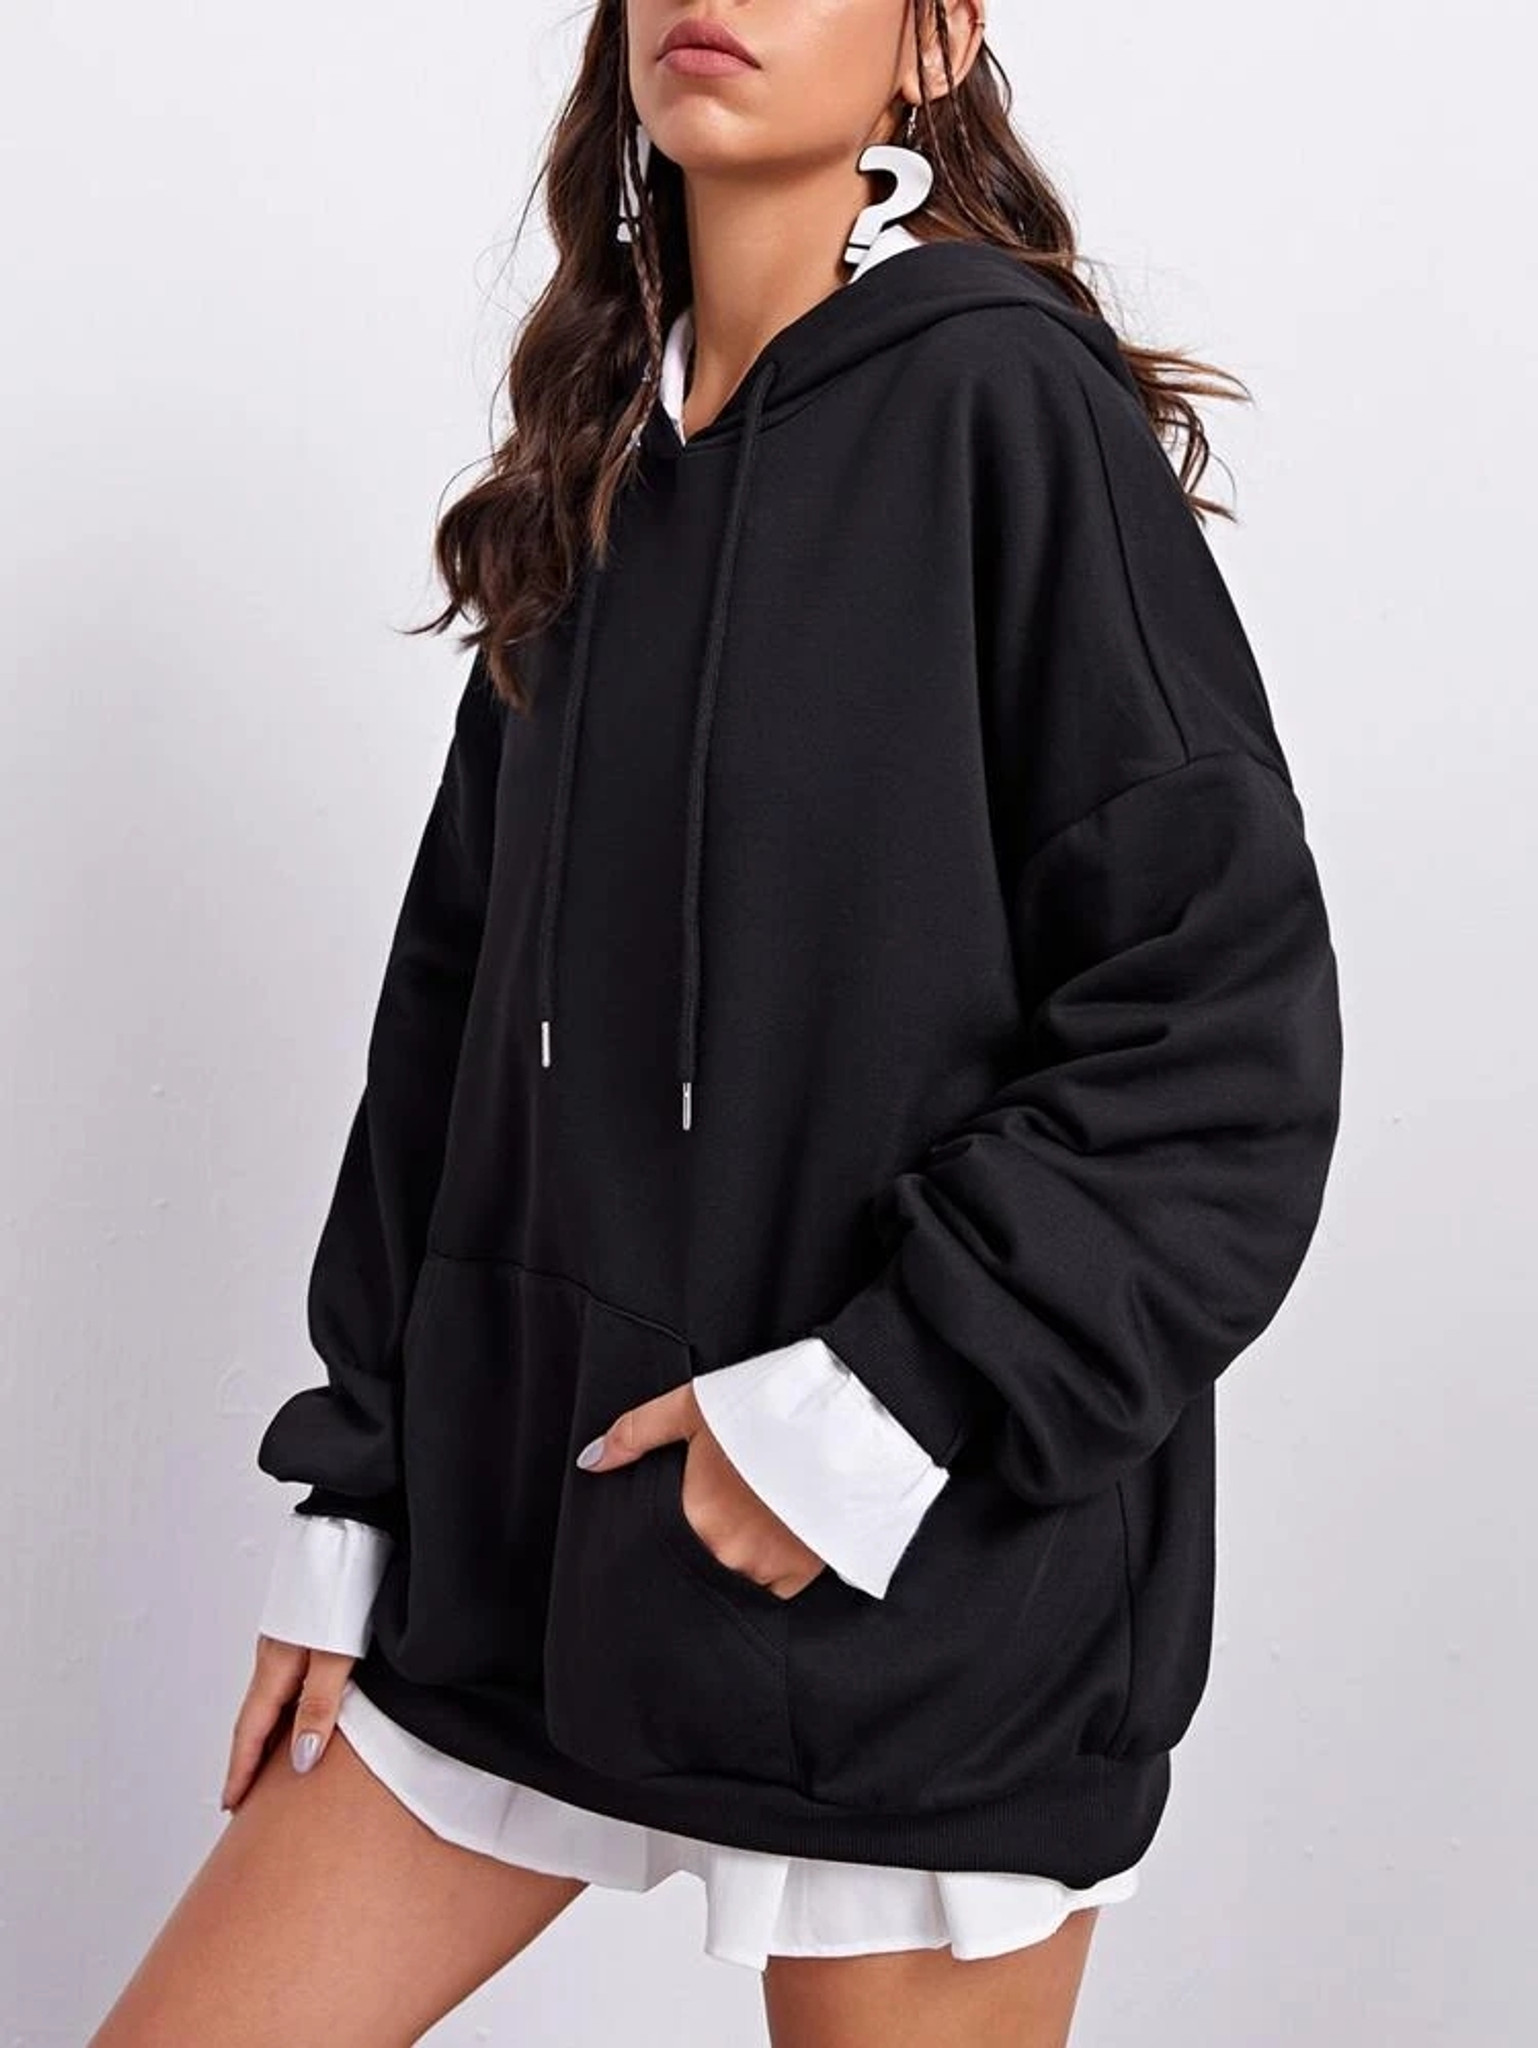 Fifth Avenue DIFT97 Back Space Print Hoodie - Black